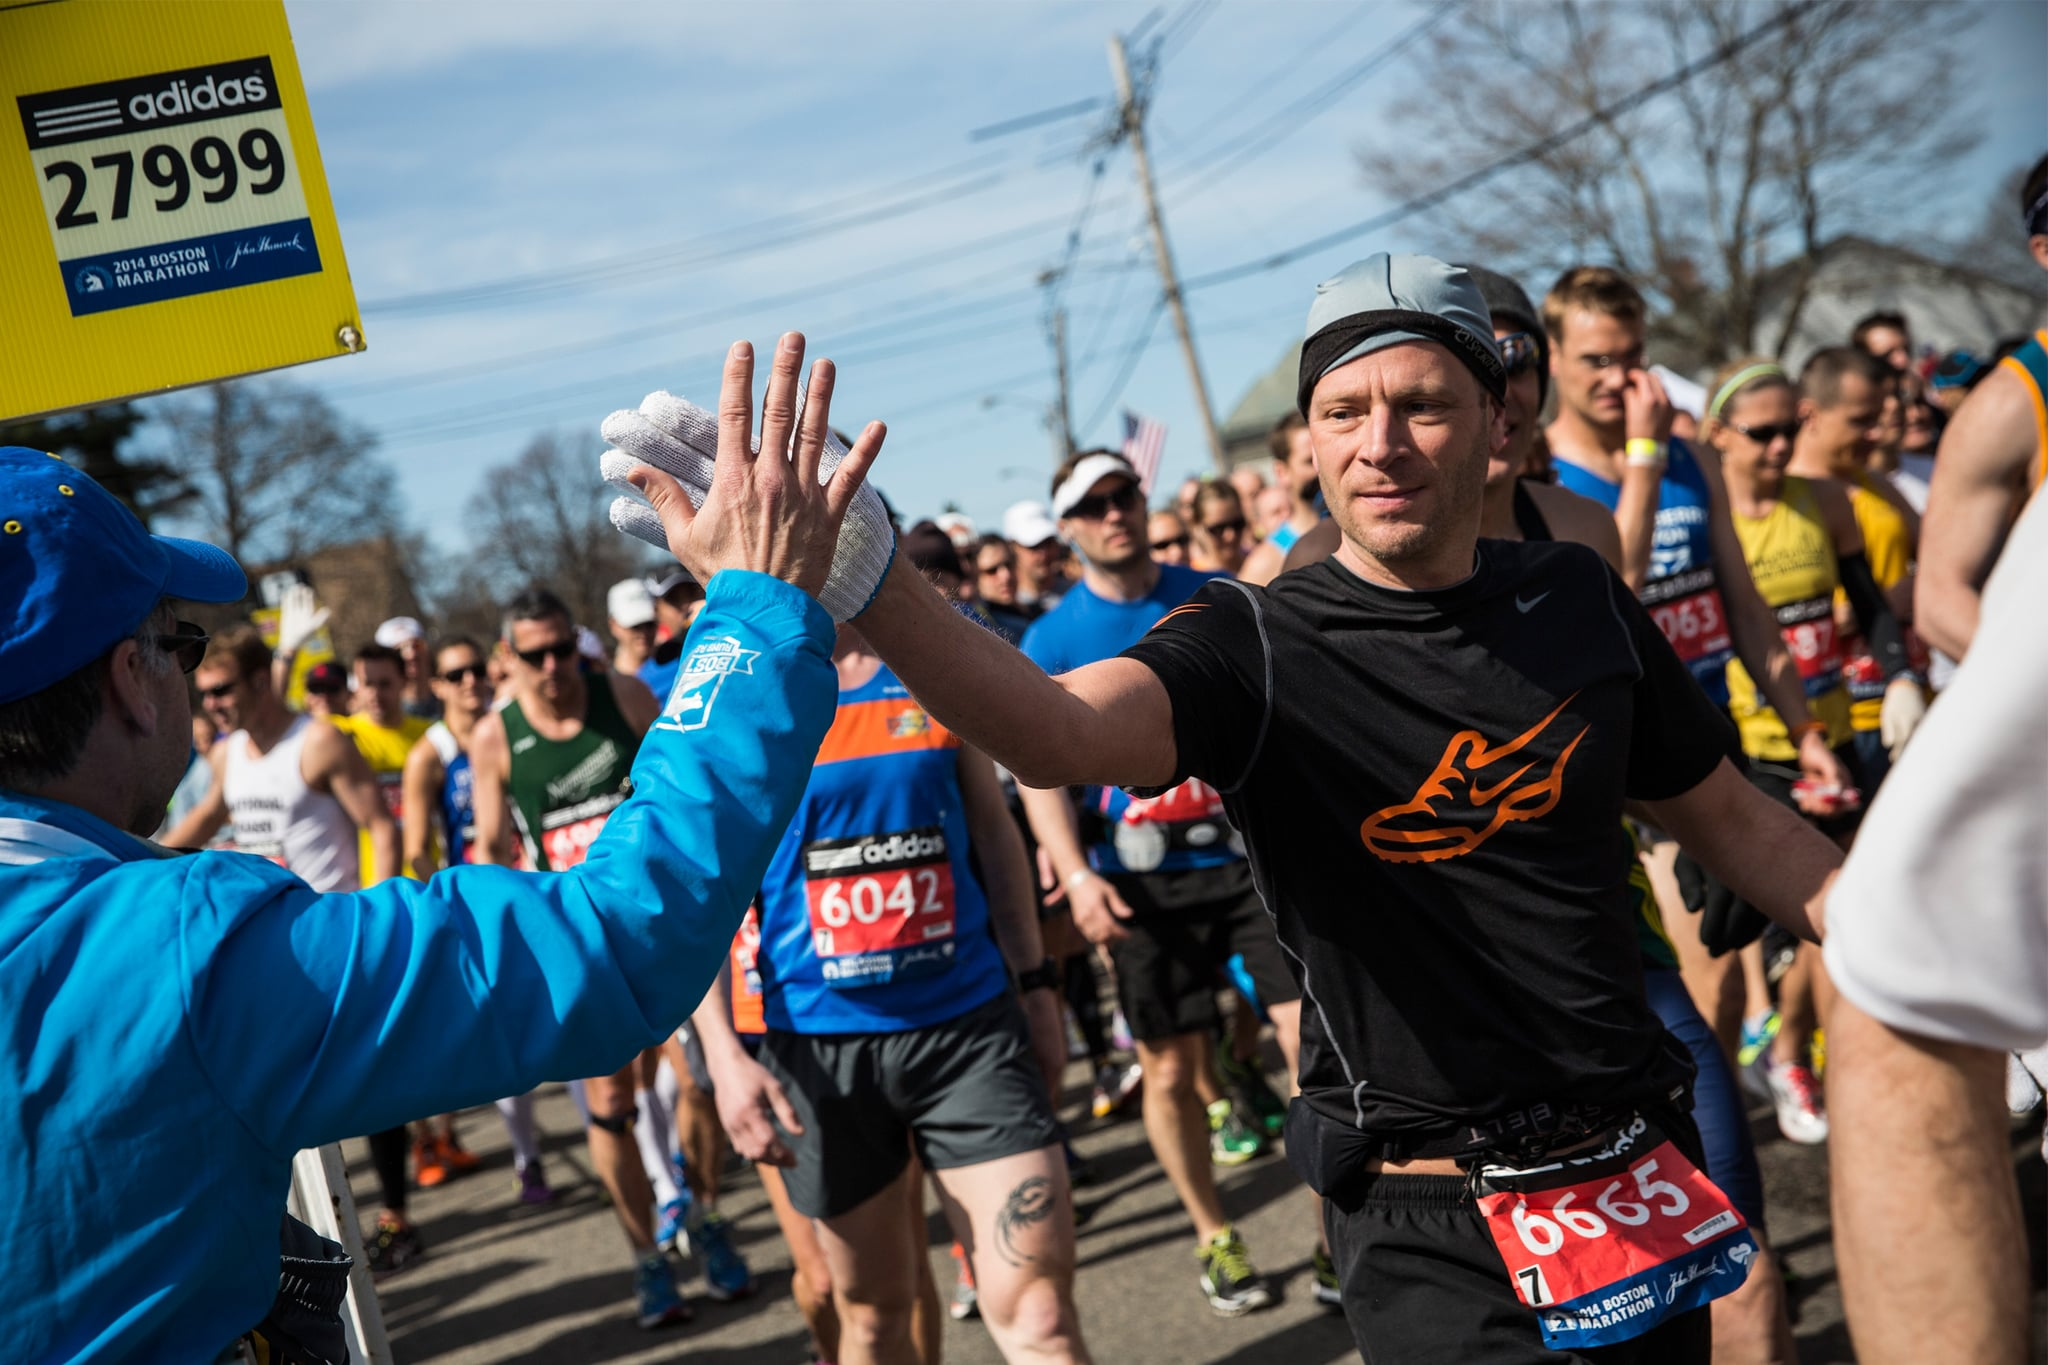 One runner gave a high five as he started the race.